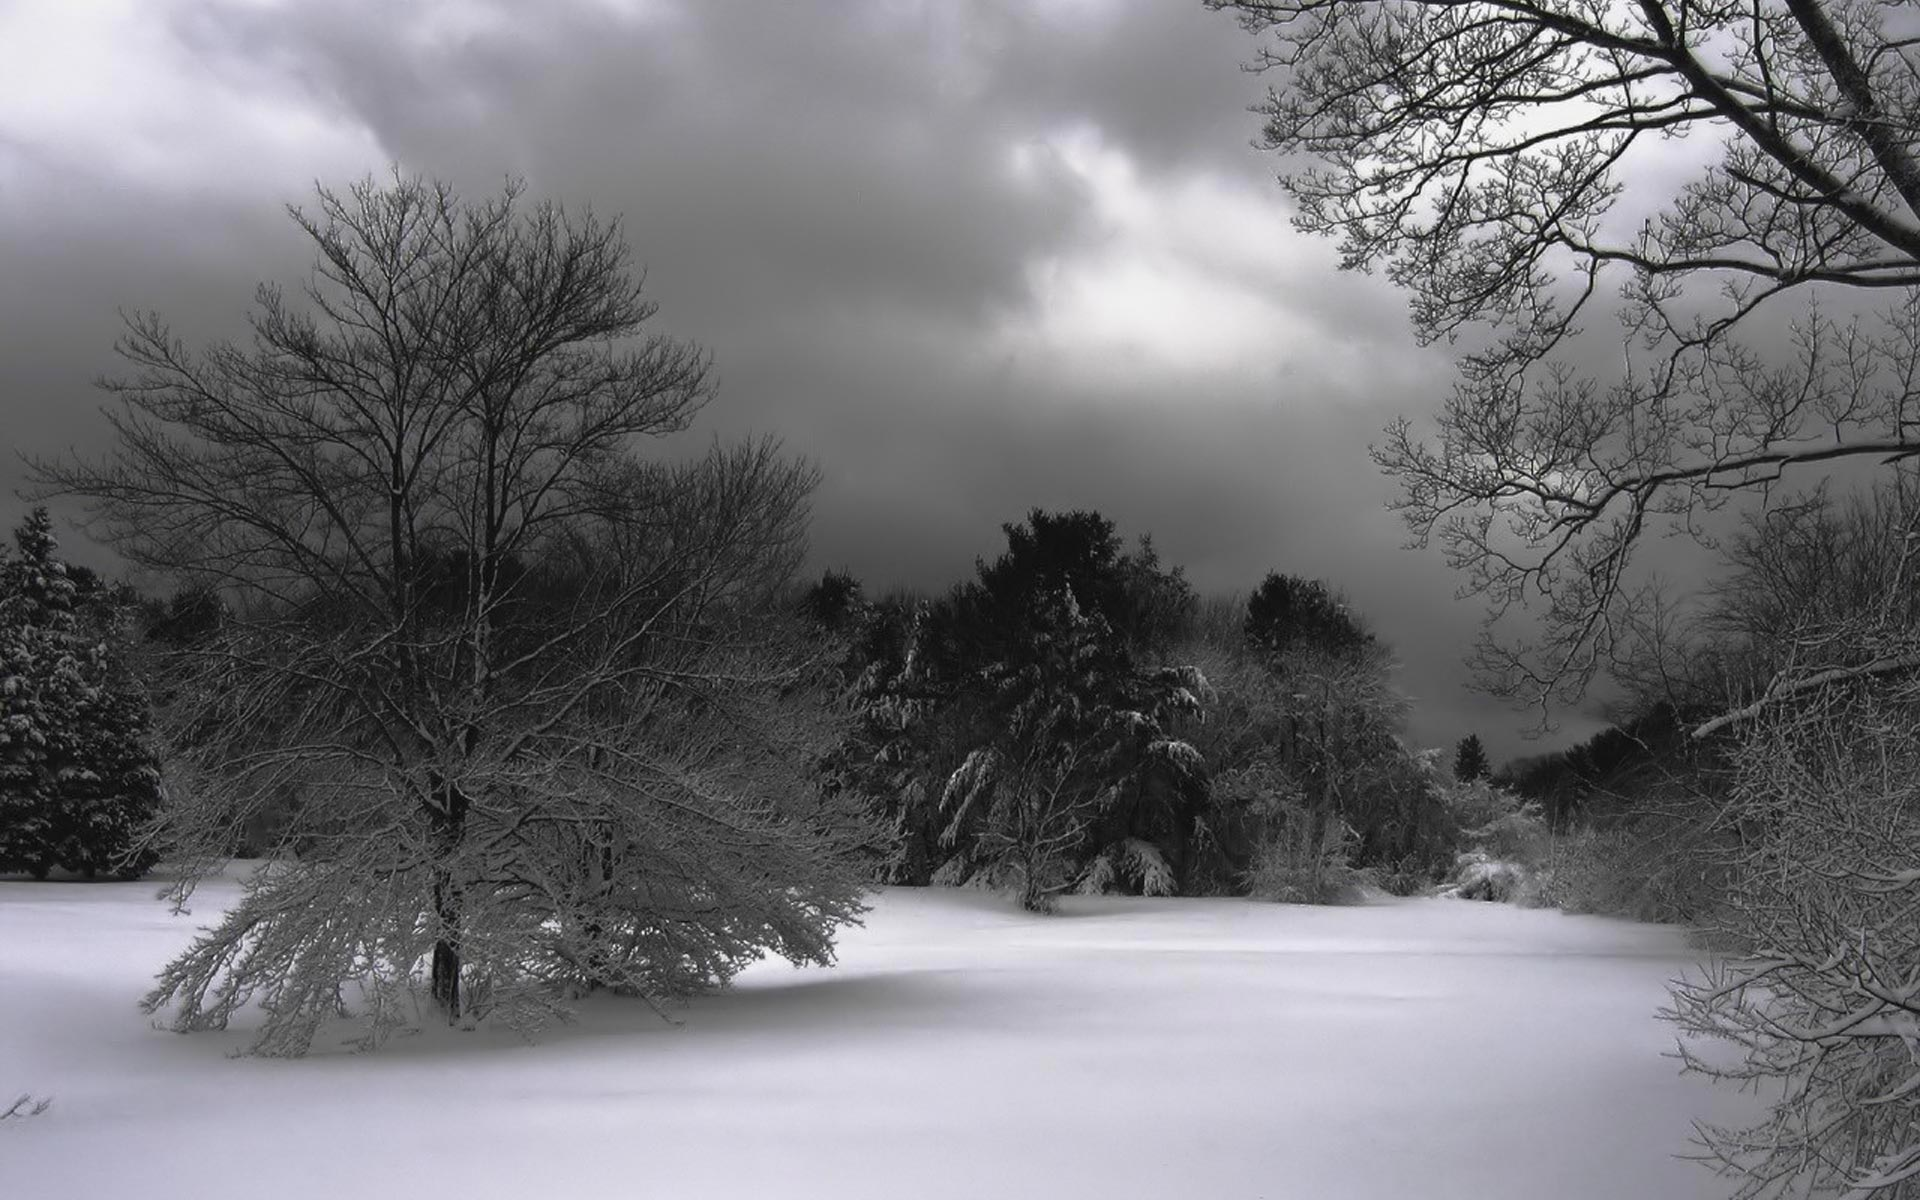 Windows Widescreen Winter Wallpaper